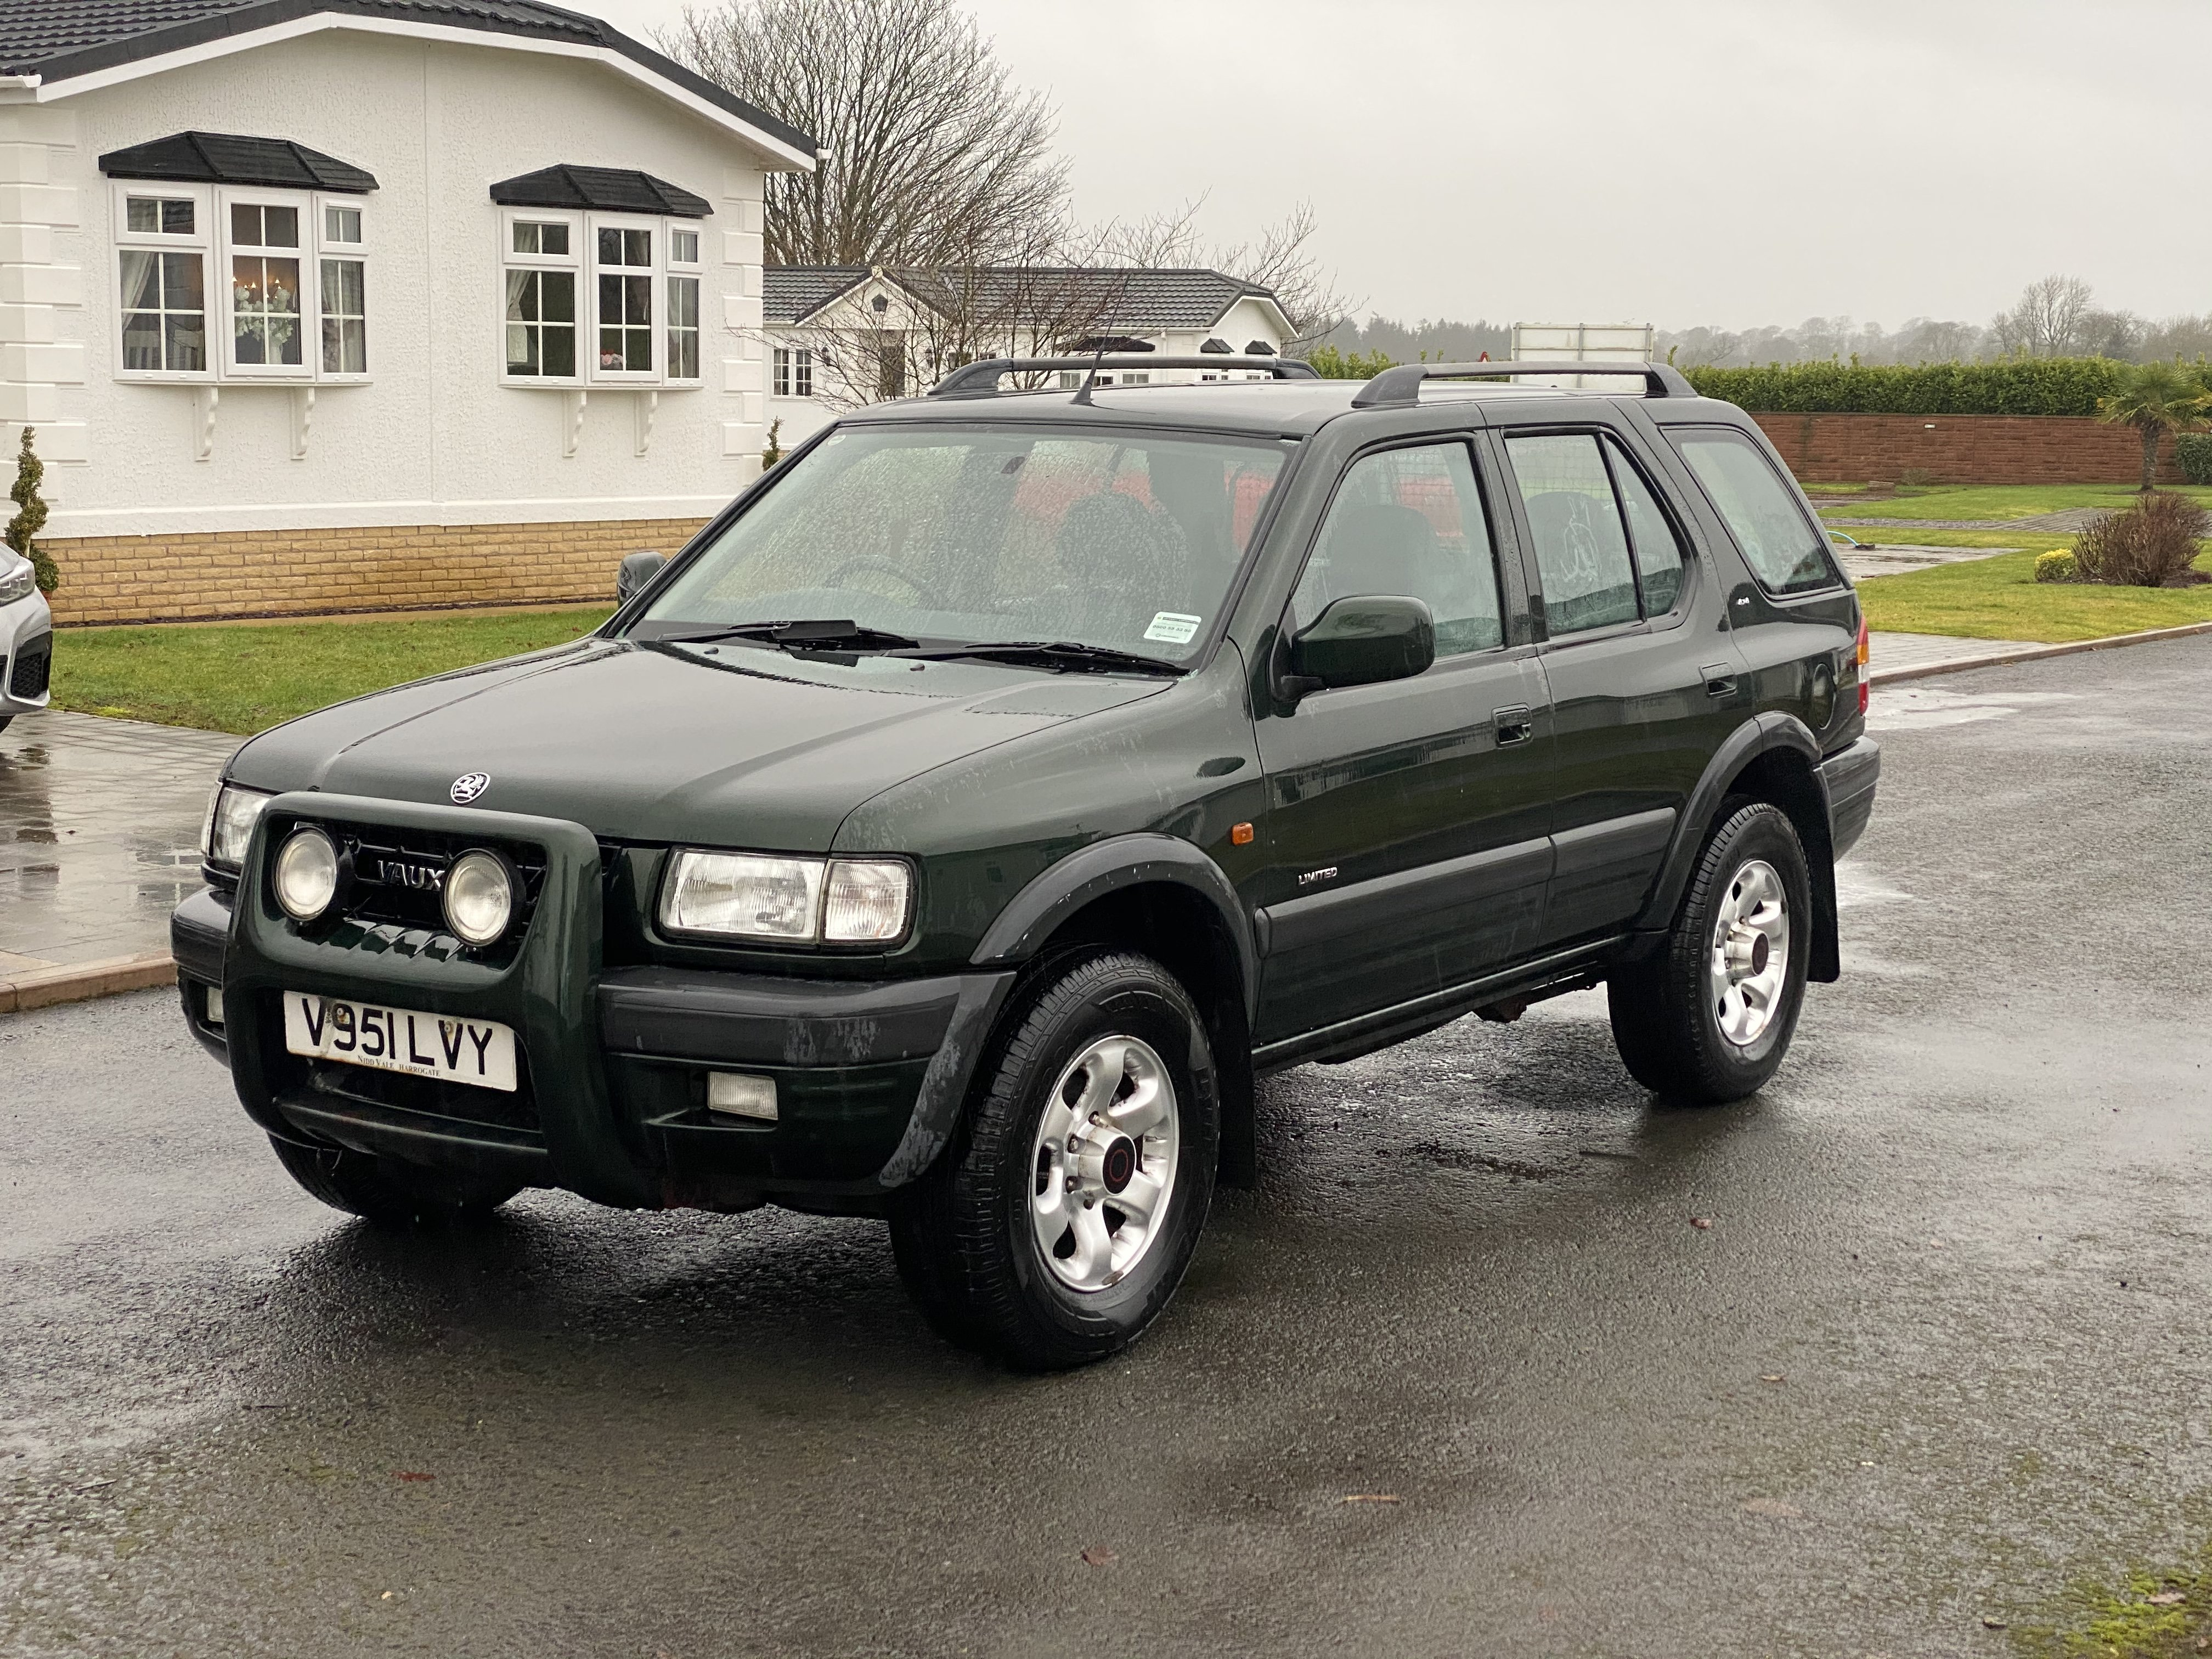 1999 Vauxhall Frontera 3.2 V6 For Sale (picture 2 of 6)